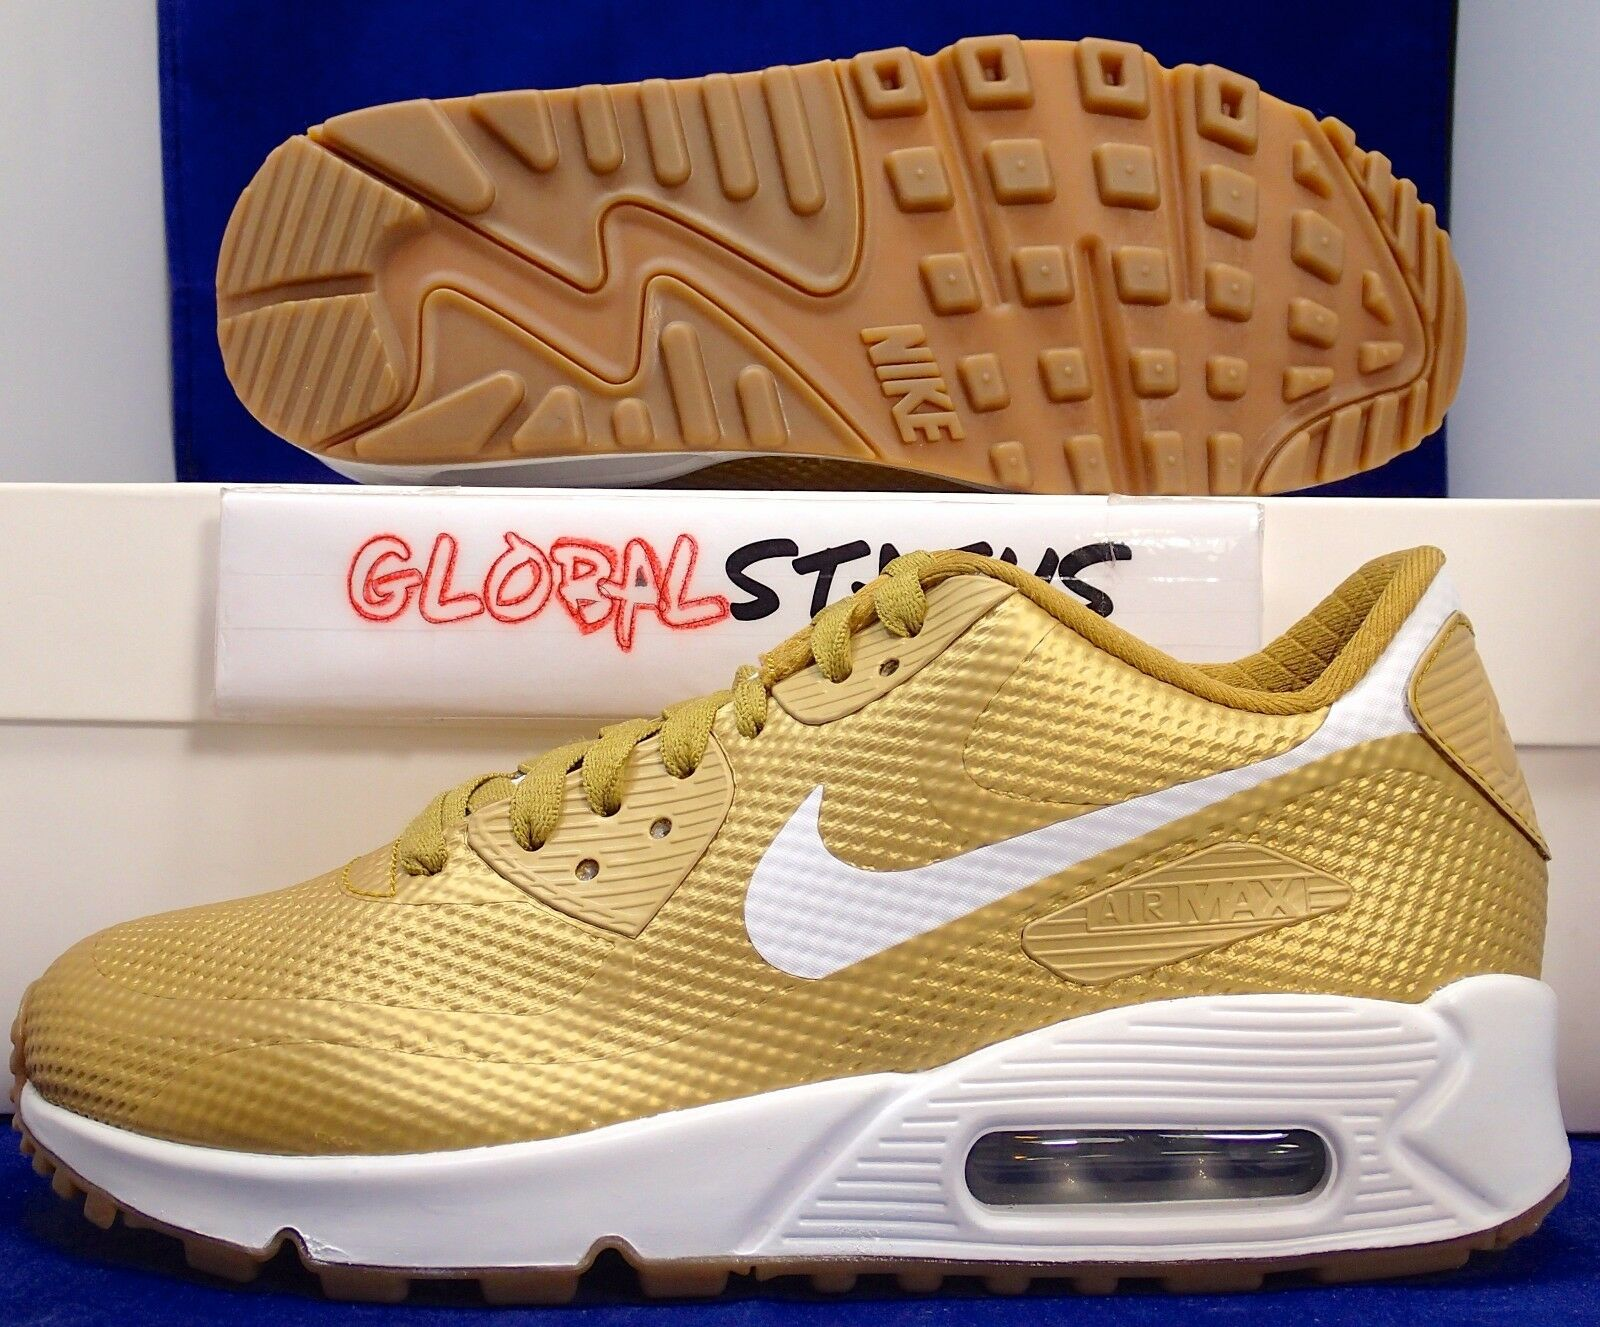 WOMENS NIKE ID AIR MAX 90 SHOES HYPERFUSE METALLIC LIQUID GOLD SHOES 90 822578 997 SZ 5.5 ca1ddc